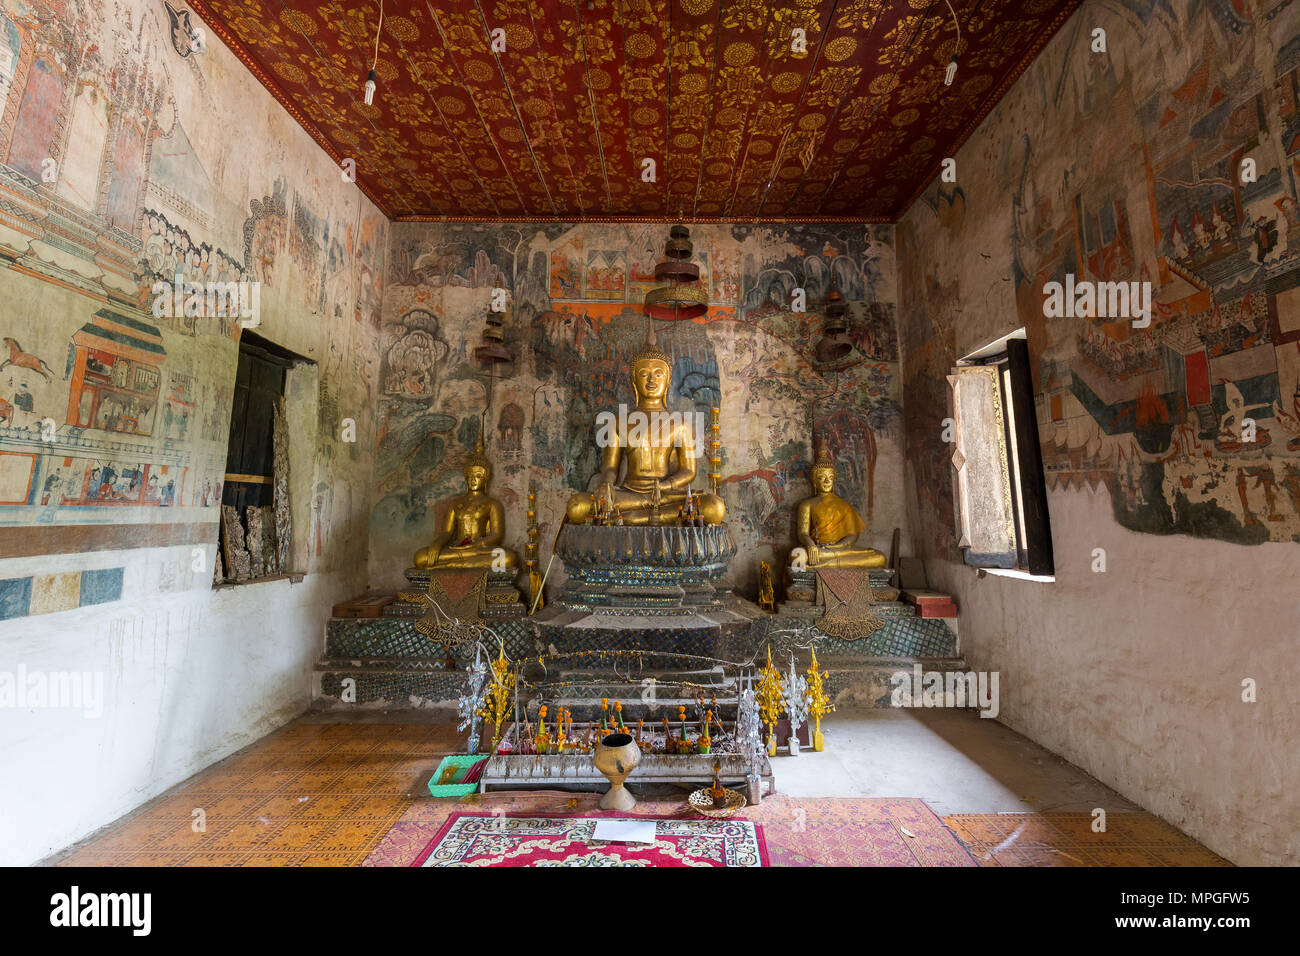 Murals, altar and Buddha statues inside of Wat Pa Huak temple in Luang Prabang, Laos. Stock Photo